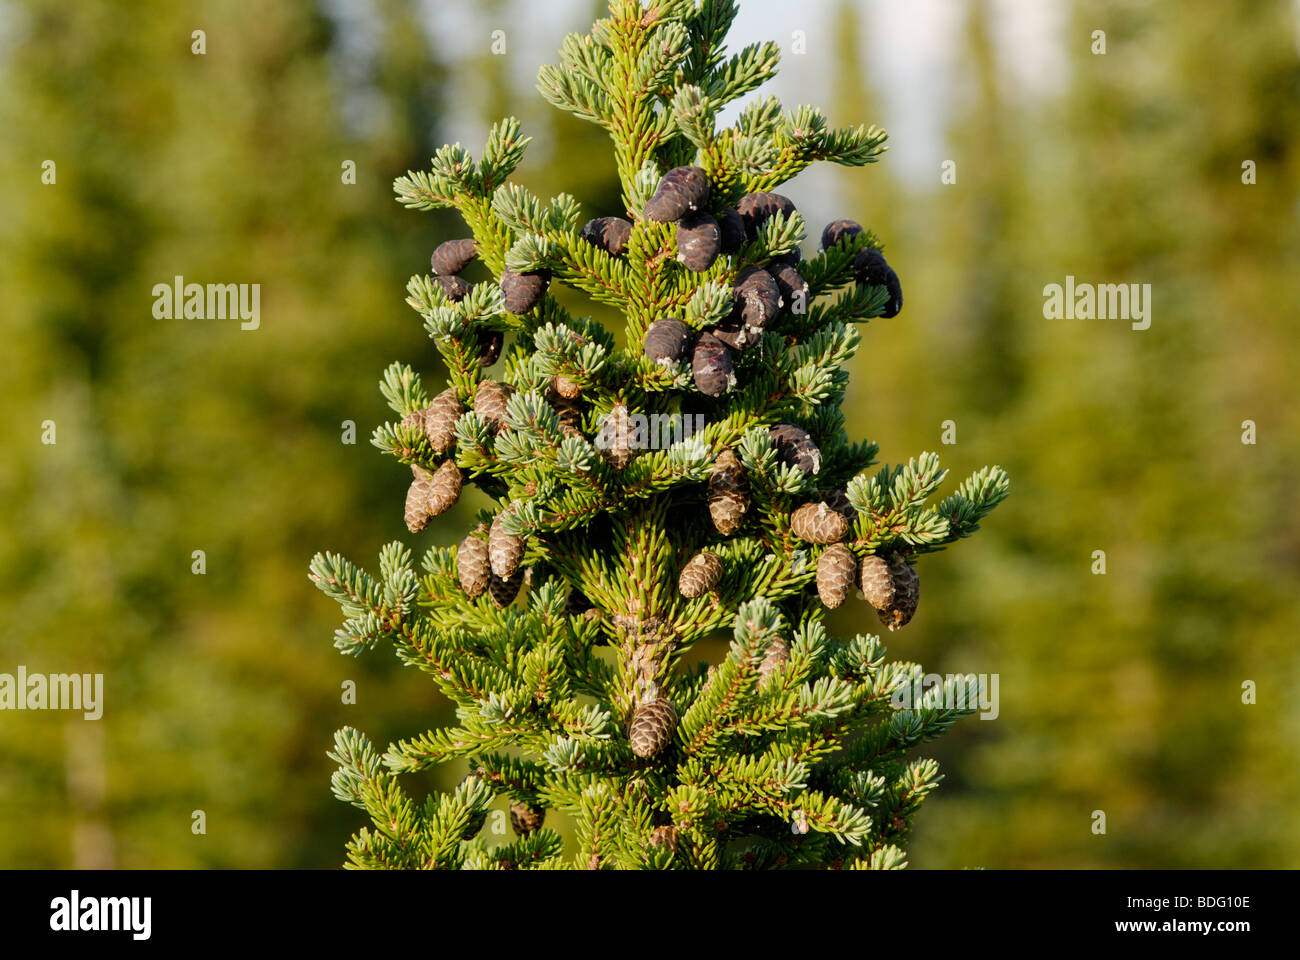 Black spruce, Picea mariana, in boreal forest of Alaska - Stock Image